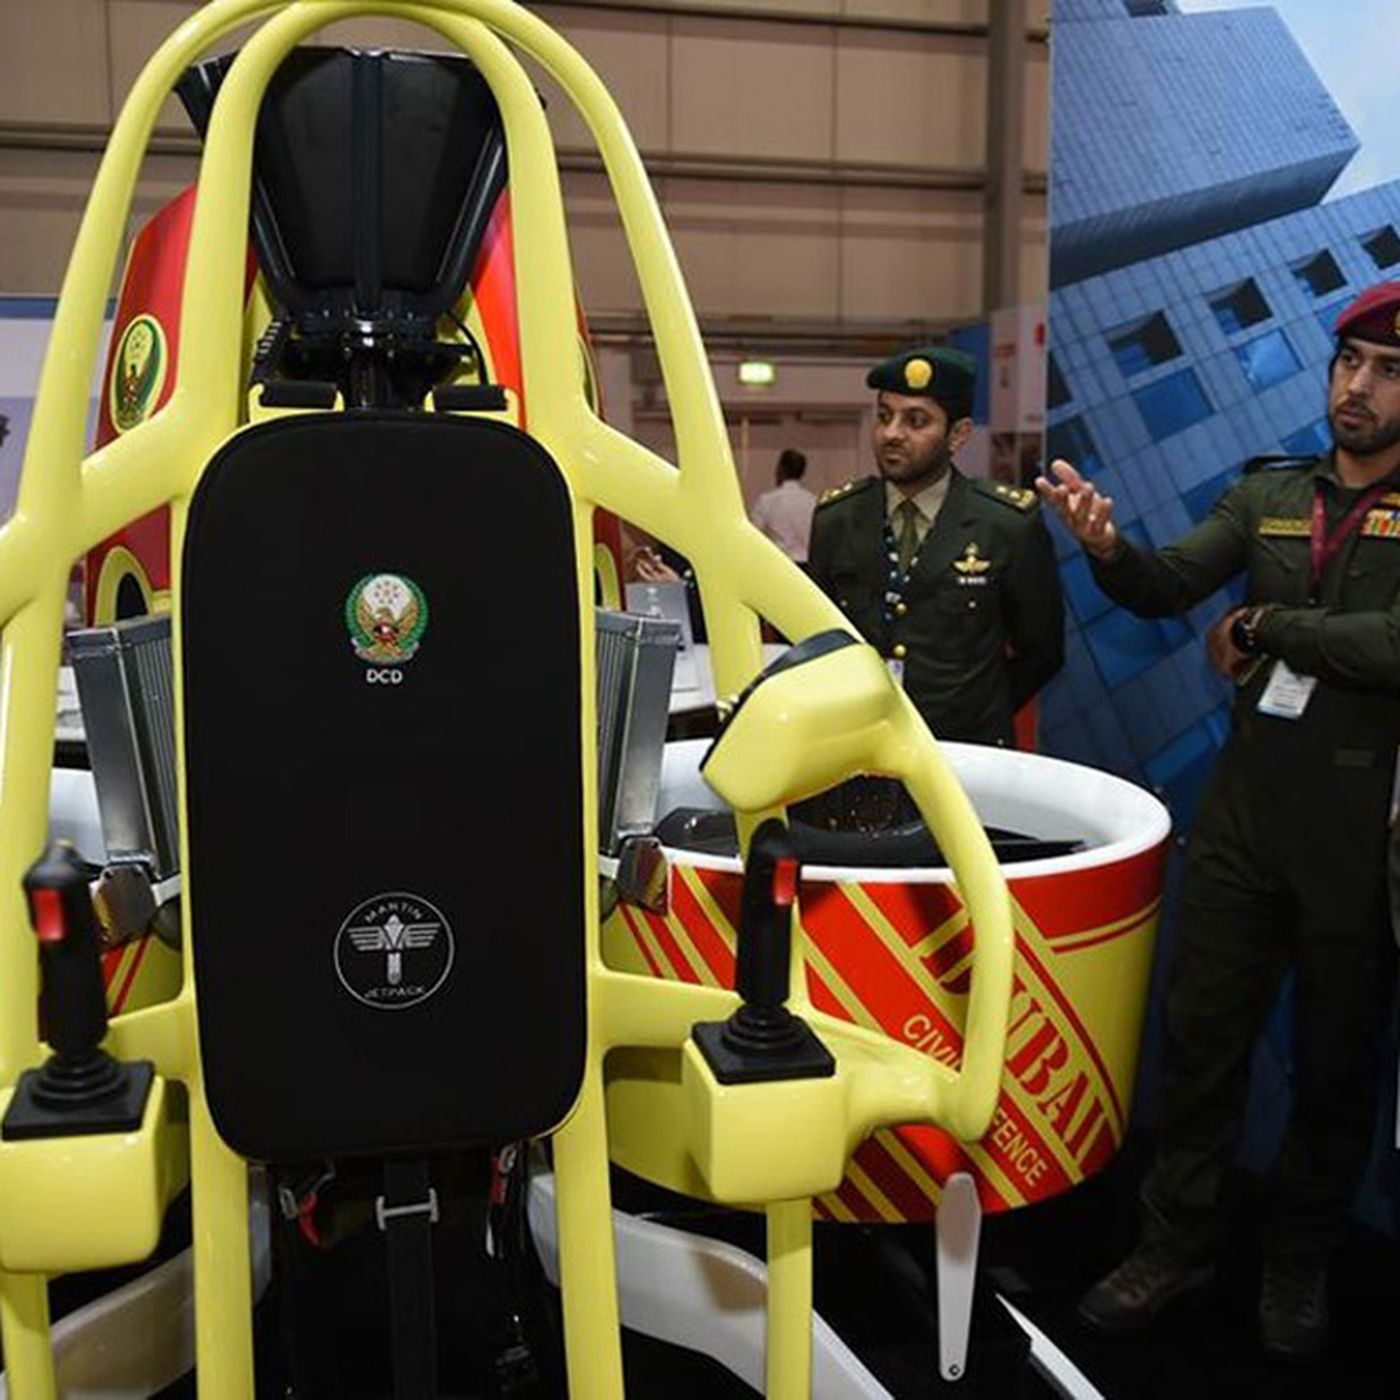 Dubai has ordered 20 jetpacks for firefighters and first